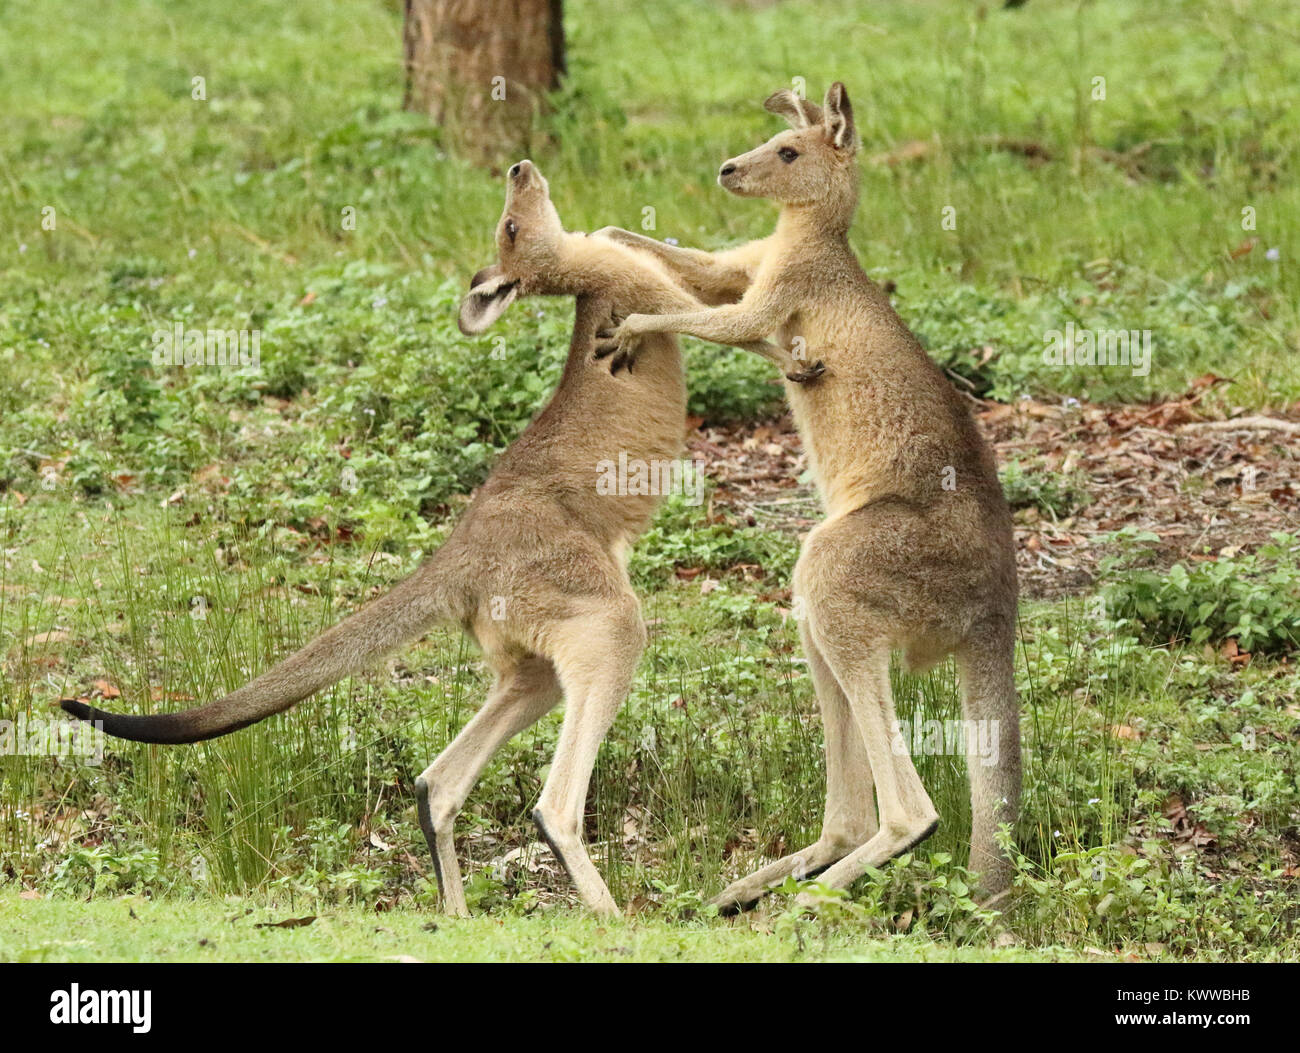 A pair of Kangaroos sparring and looking like dance partners. - Stock Image